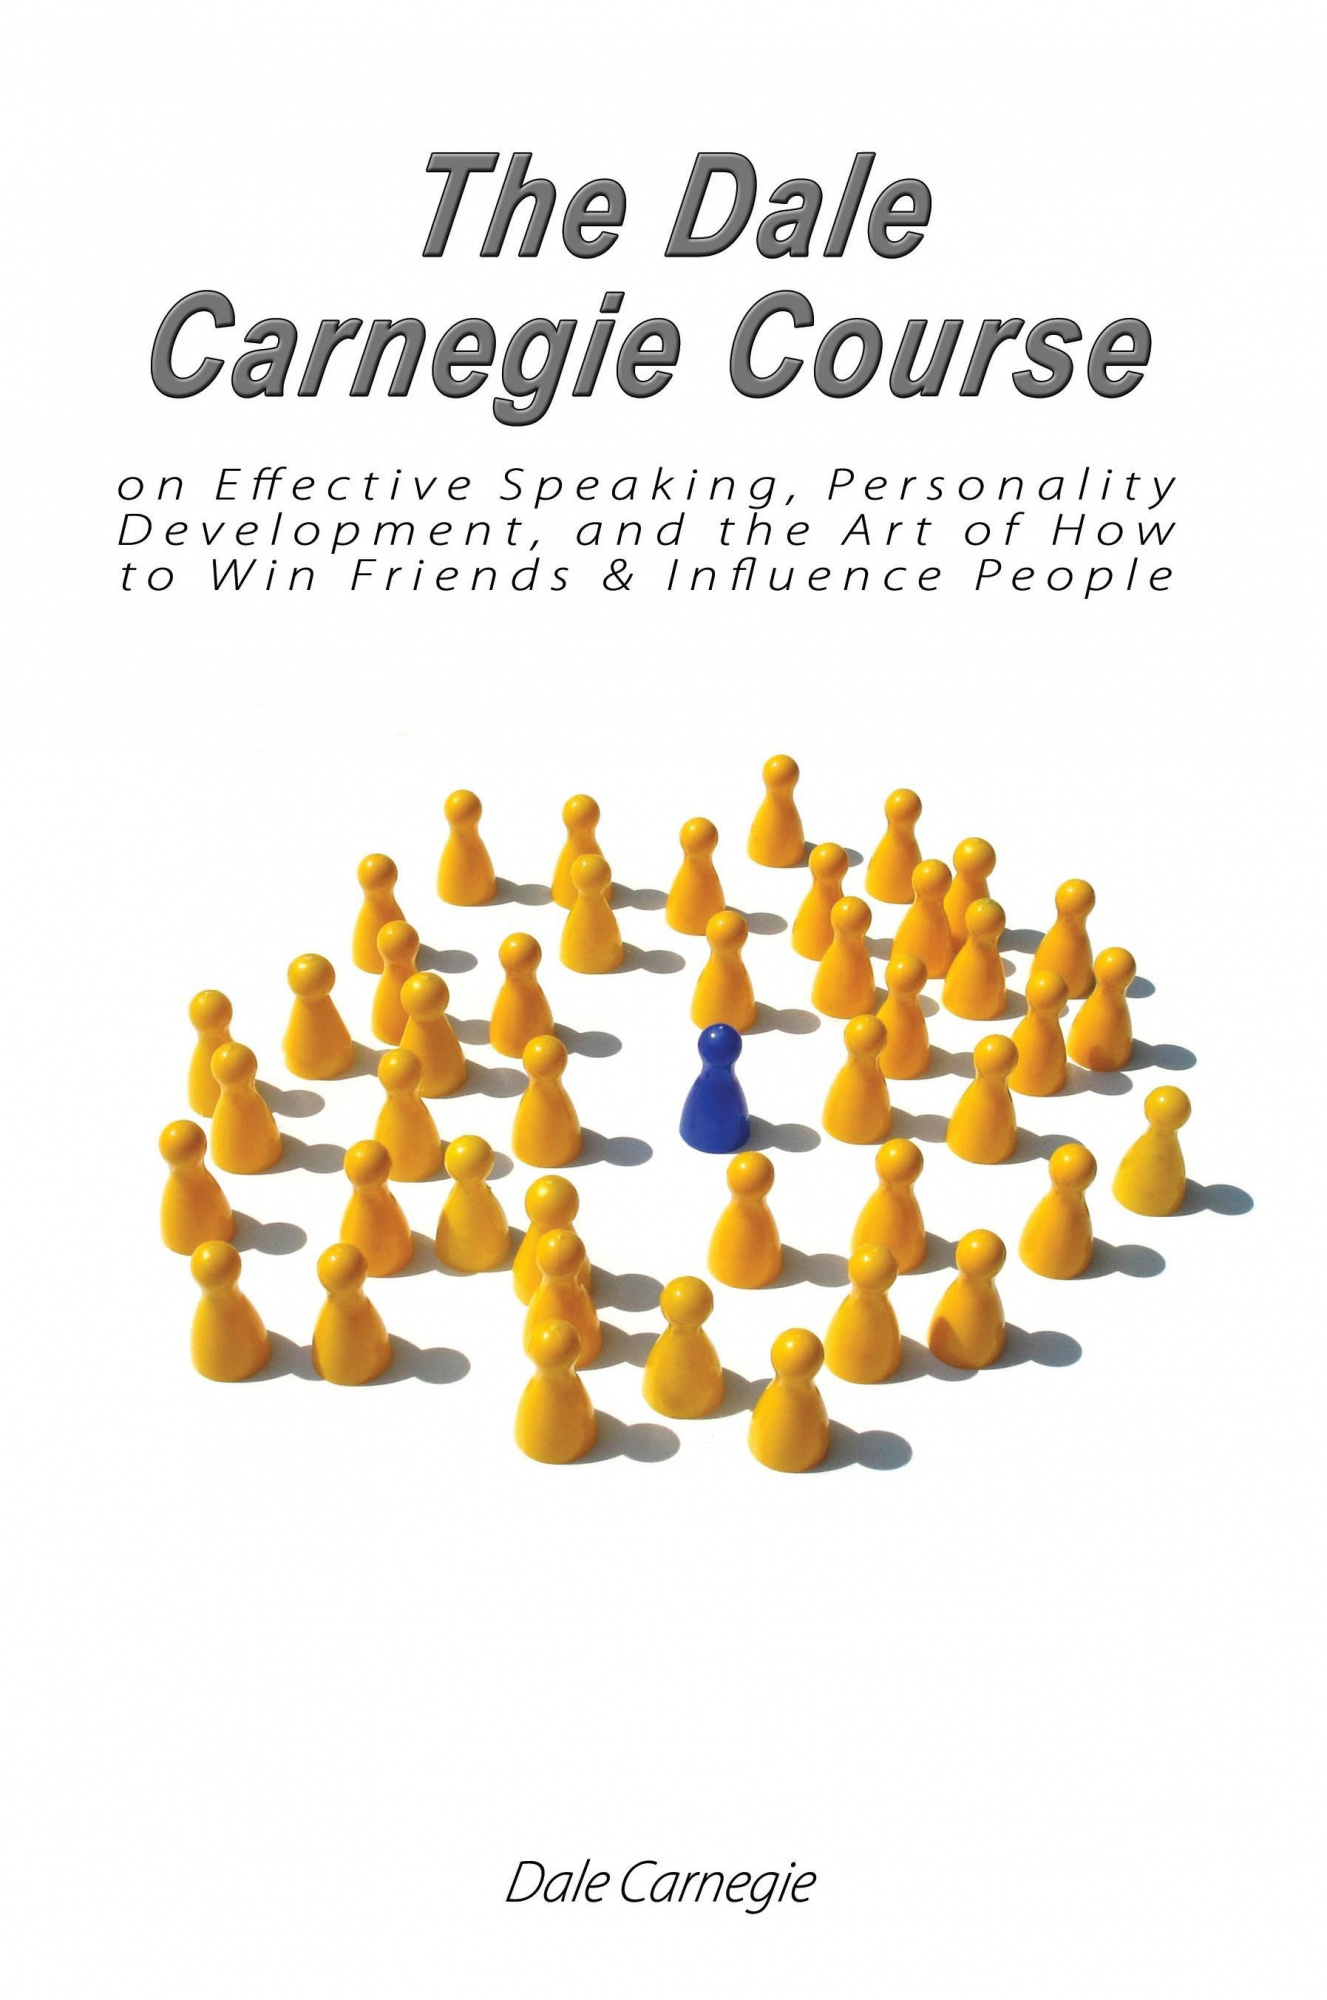 The Dale Carnegie Course on Effective Speaking, Personality Development, and the Art of How to Win Friends & Influence People by Dale Carnegie, ISBN: 9789563100150